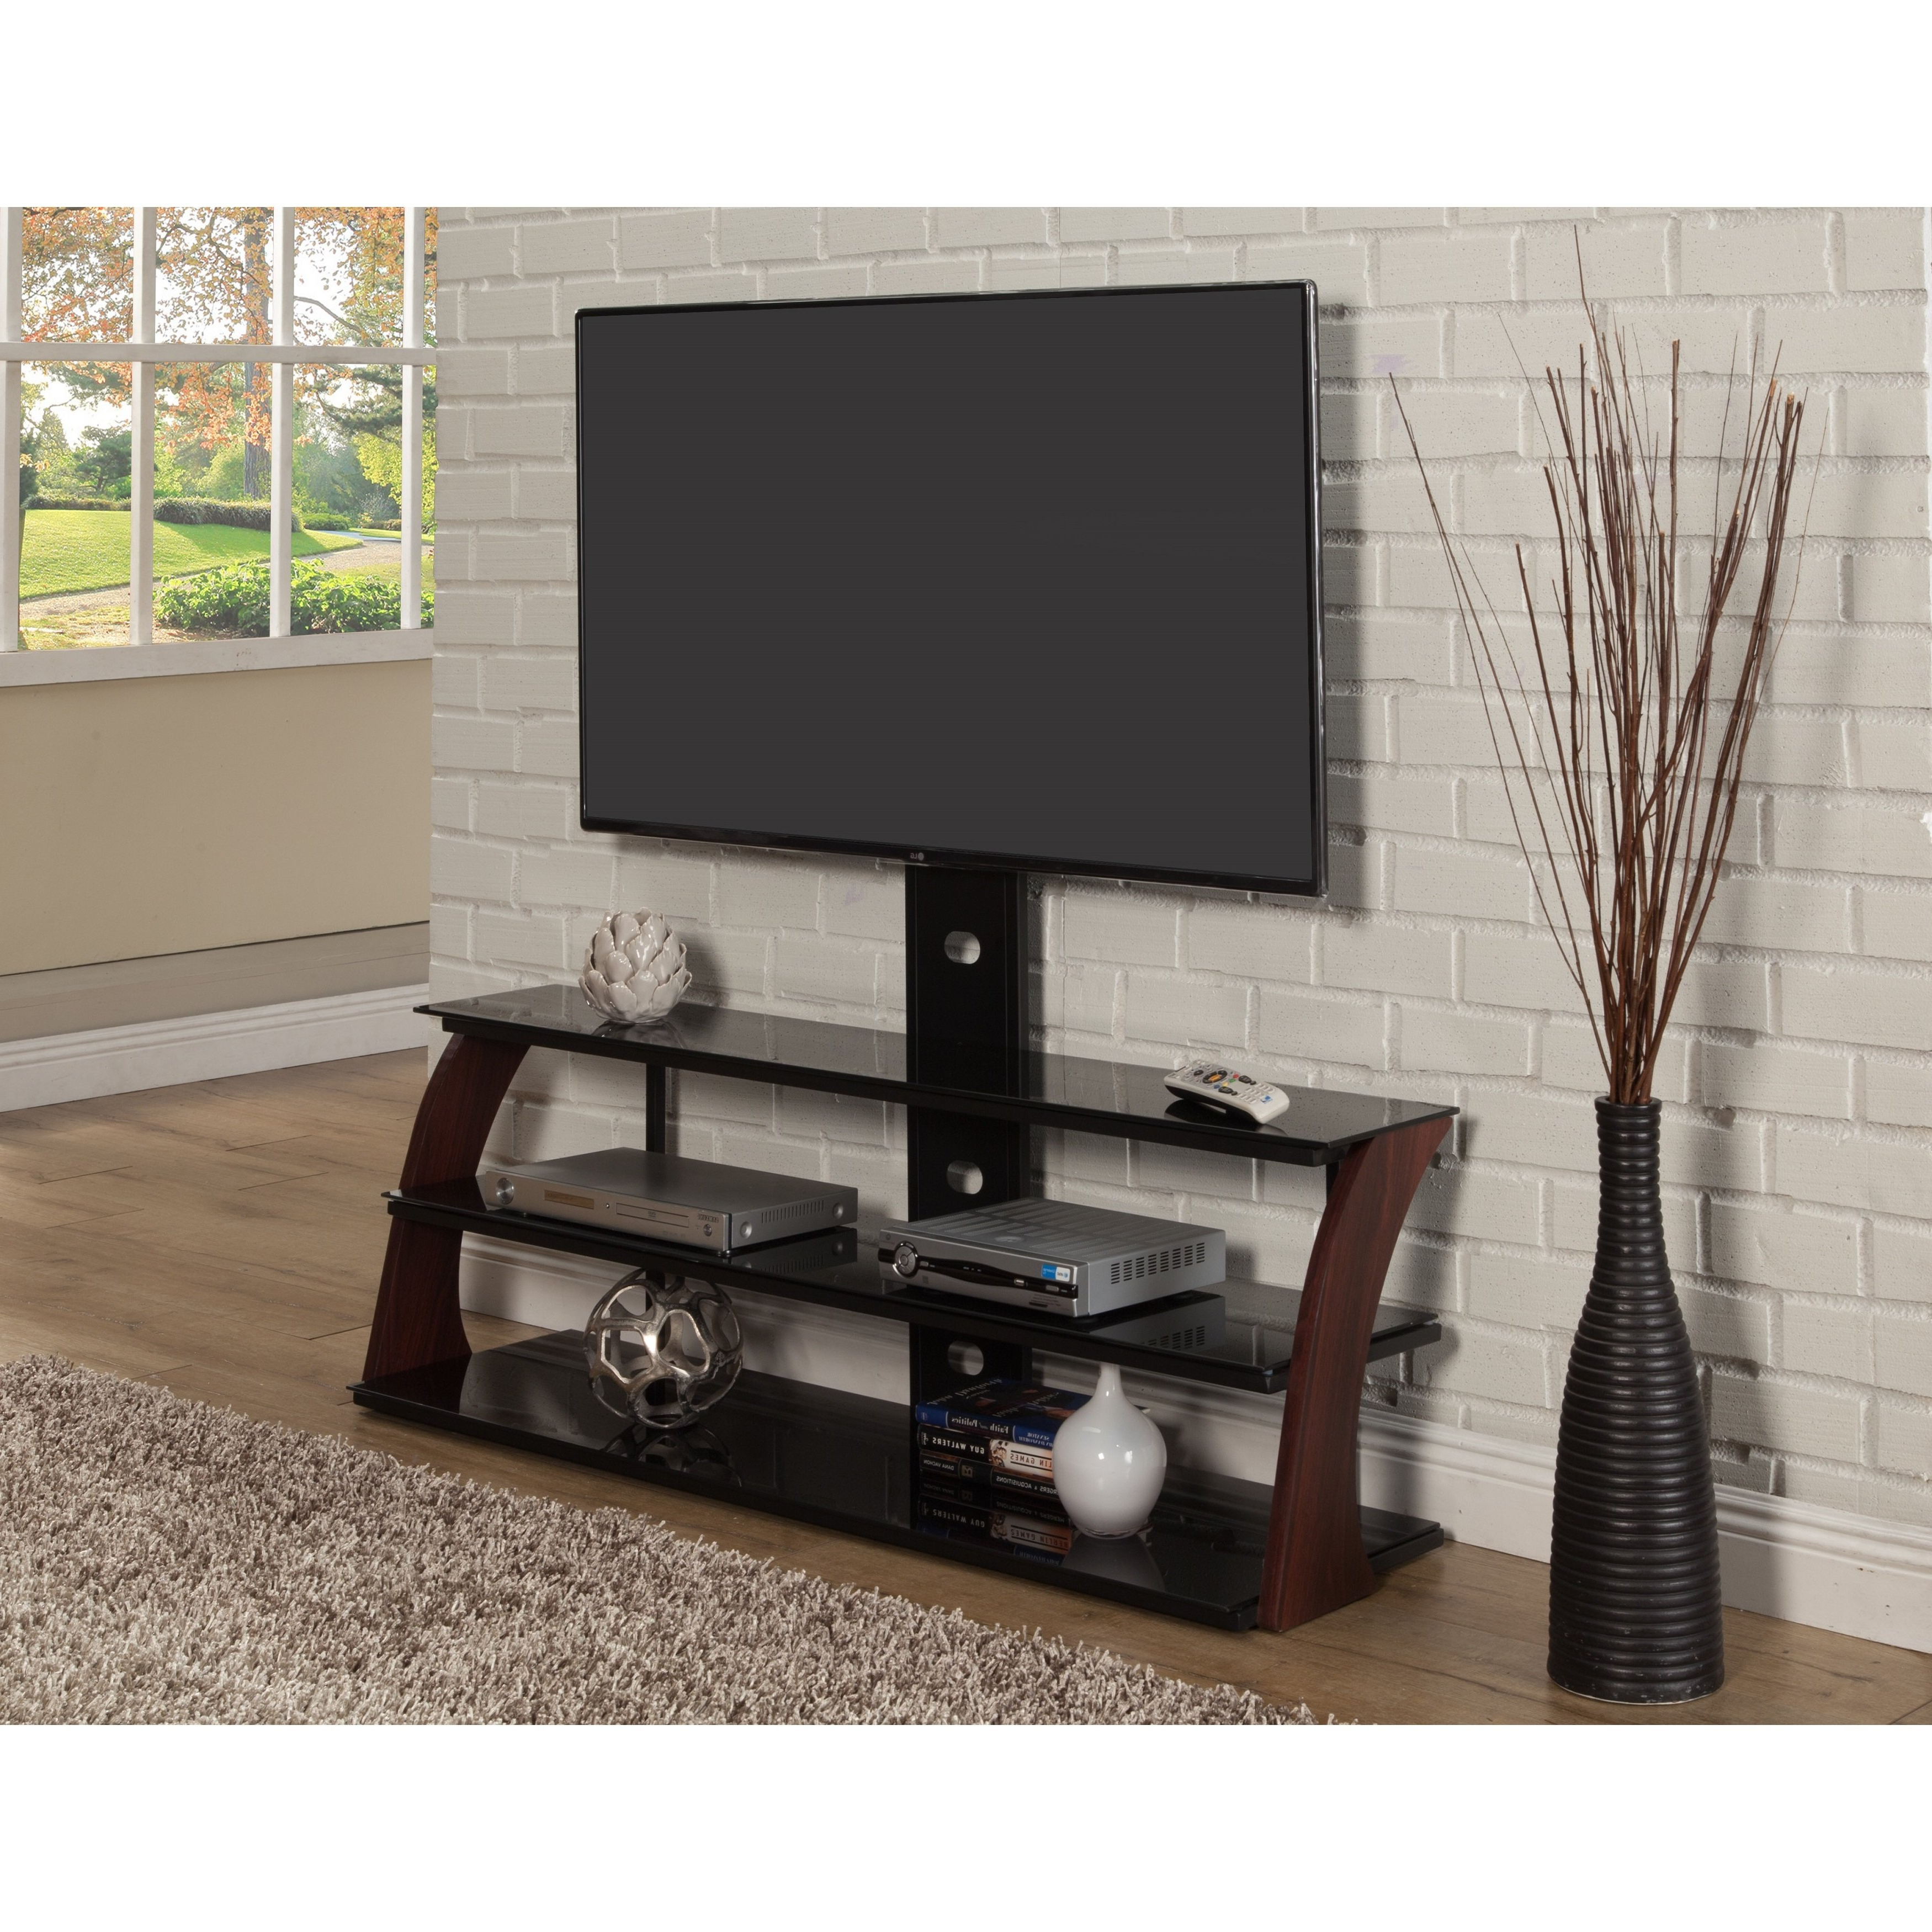 Shop Sandberg Furniture Abigail Black Tv Stand – Free Shipping Today Intended For Walters Media Console Tables (Gallery 6 of 20)